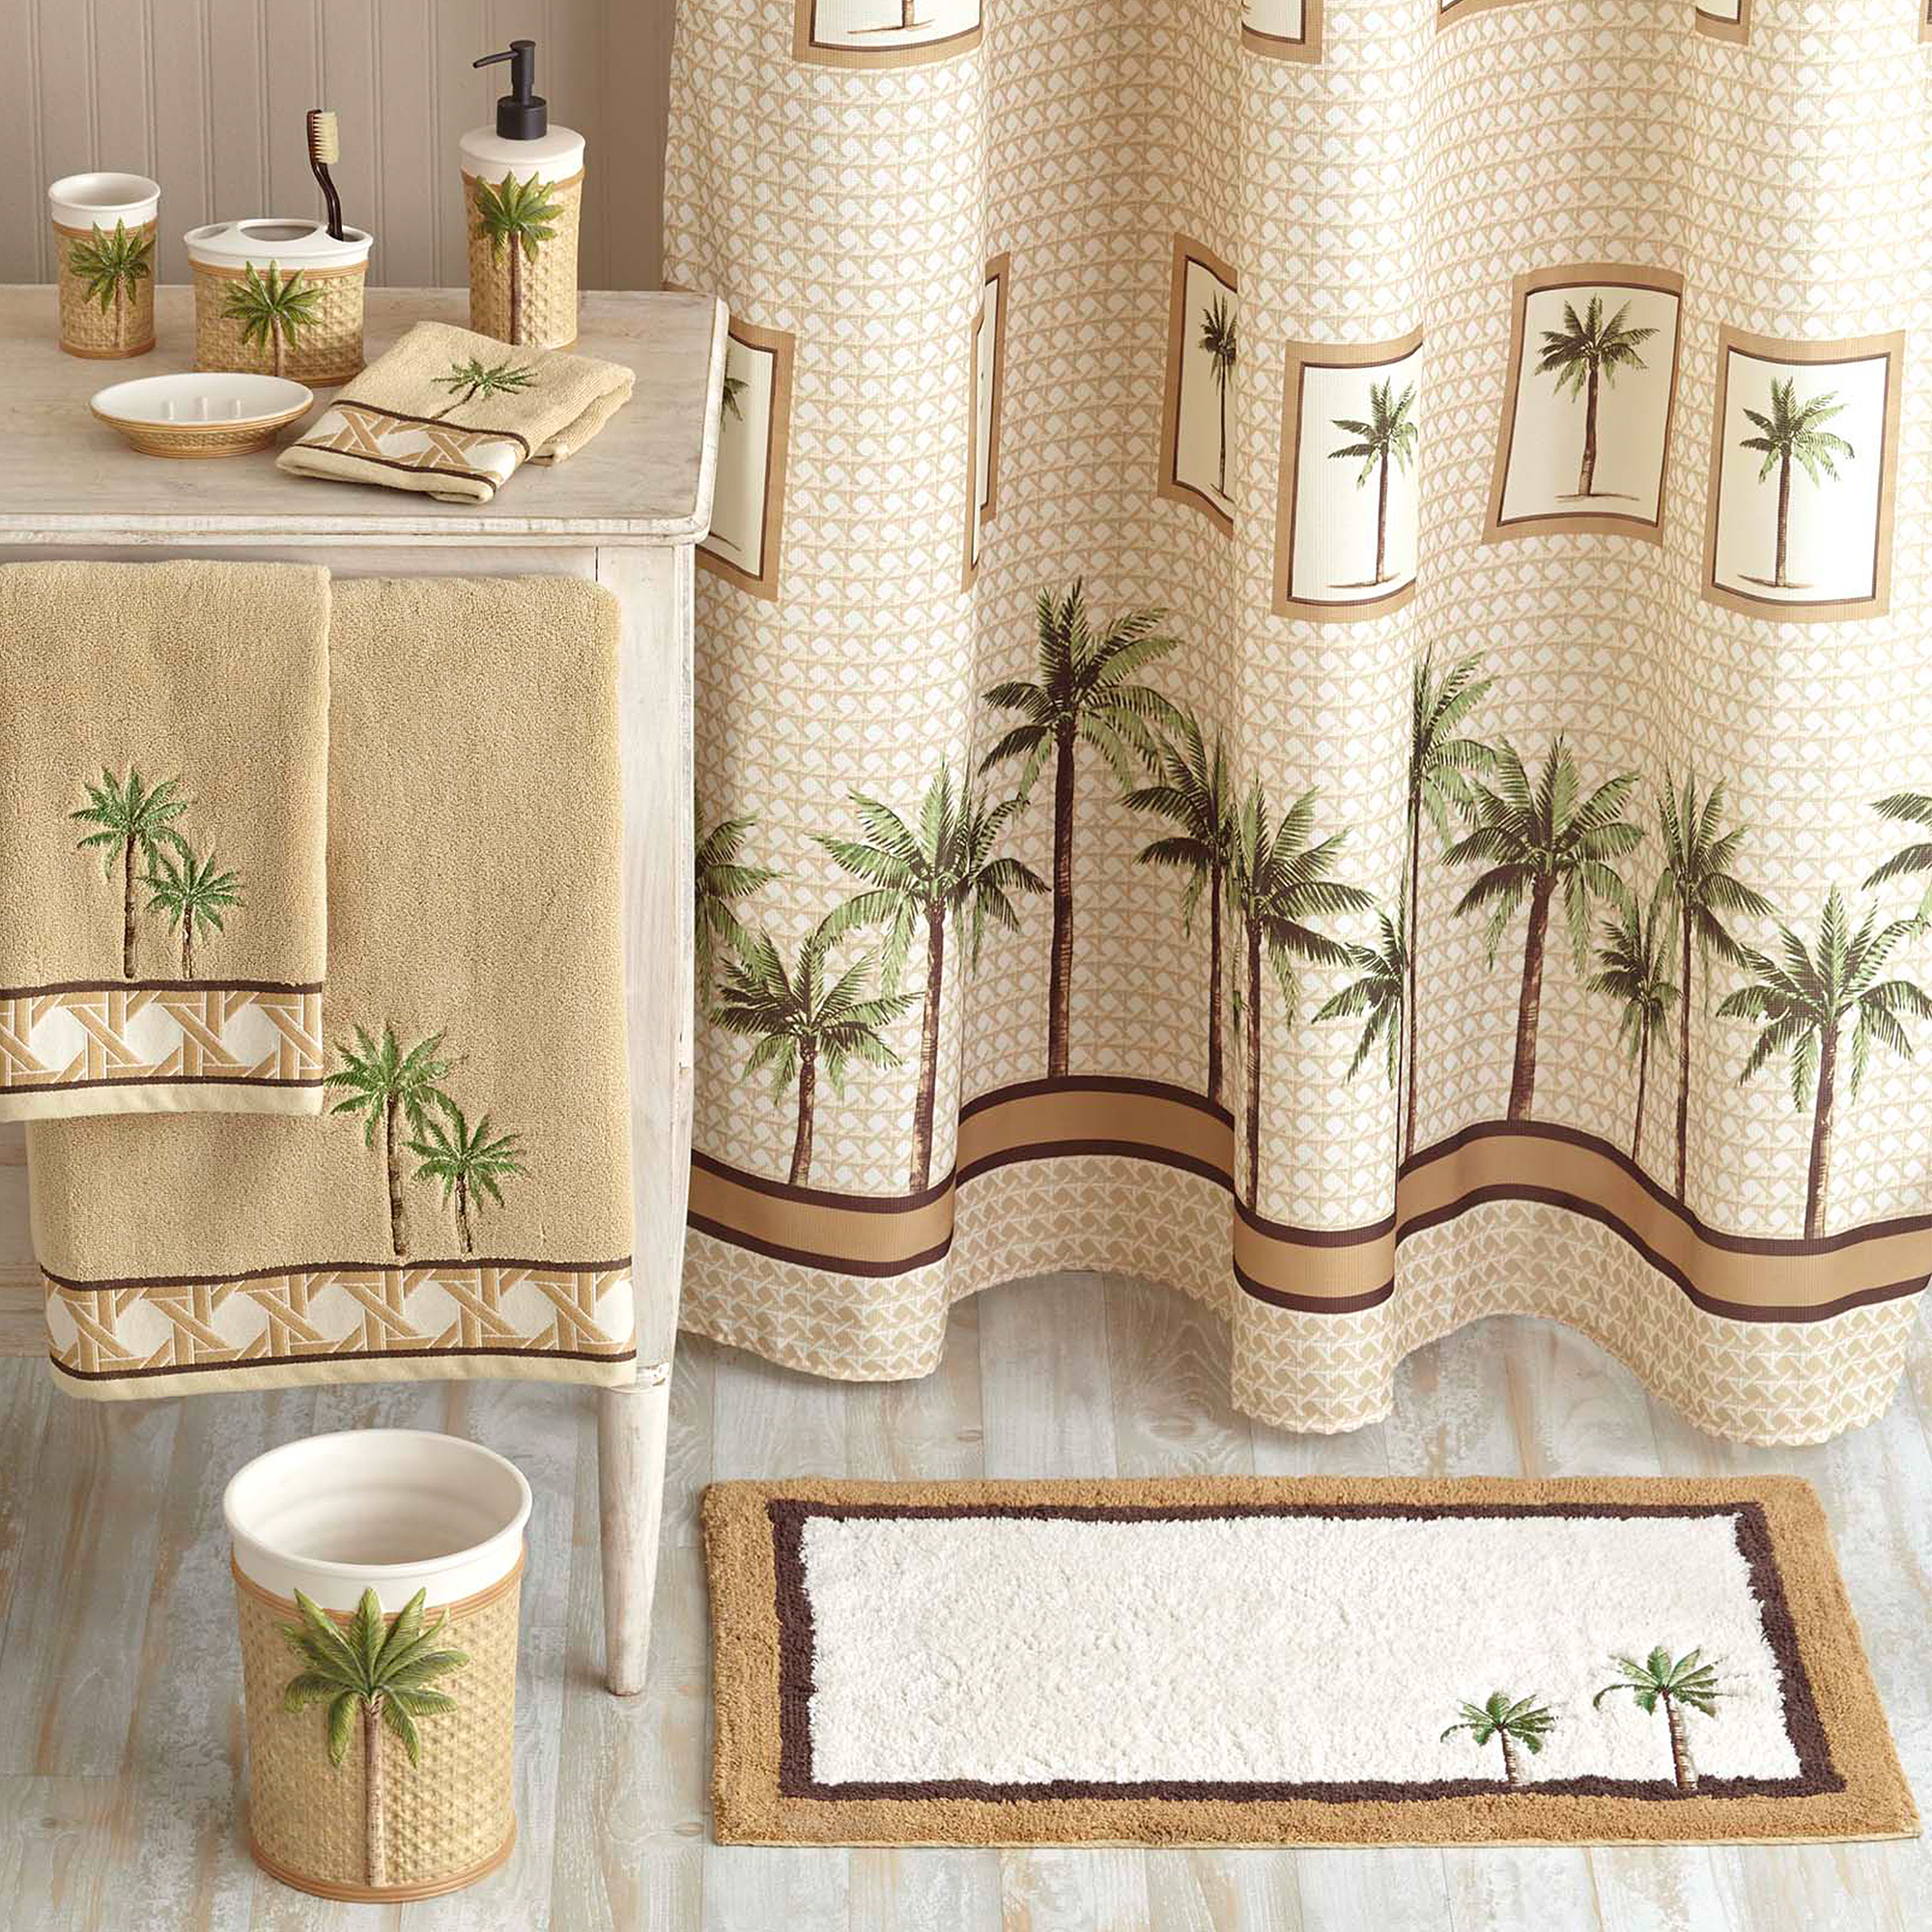 Bathroom sets walmart - Better Homes And Gardens Palm Decorative Bath Collection Shower Curtain Walmart Com